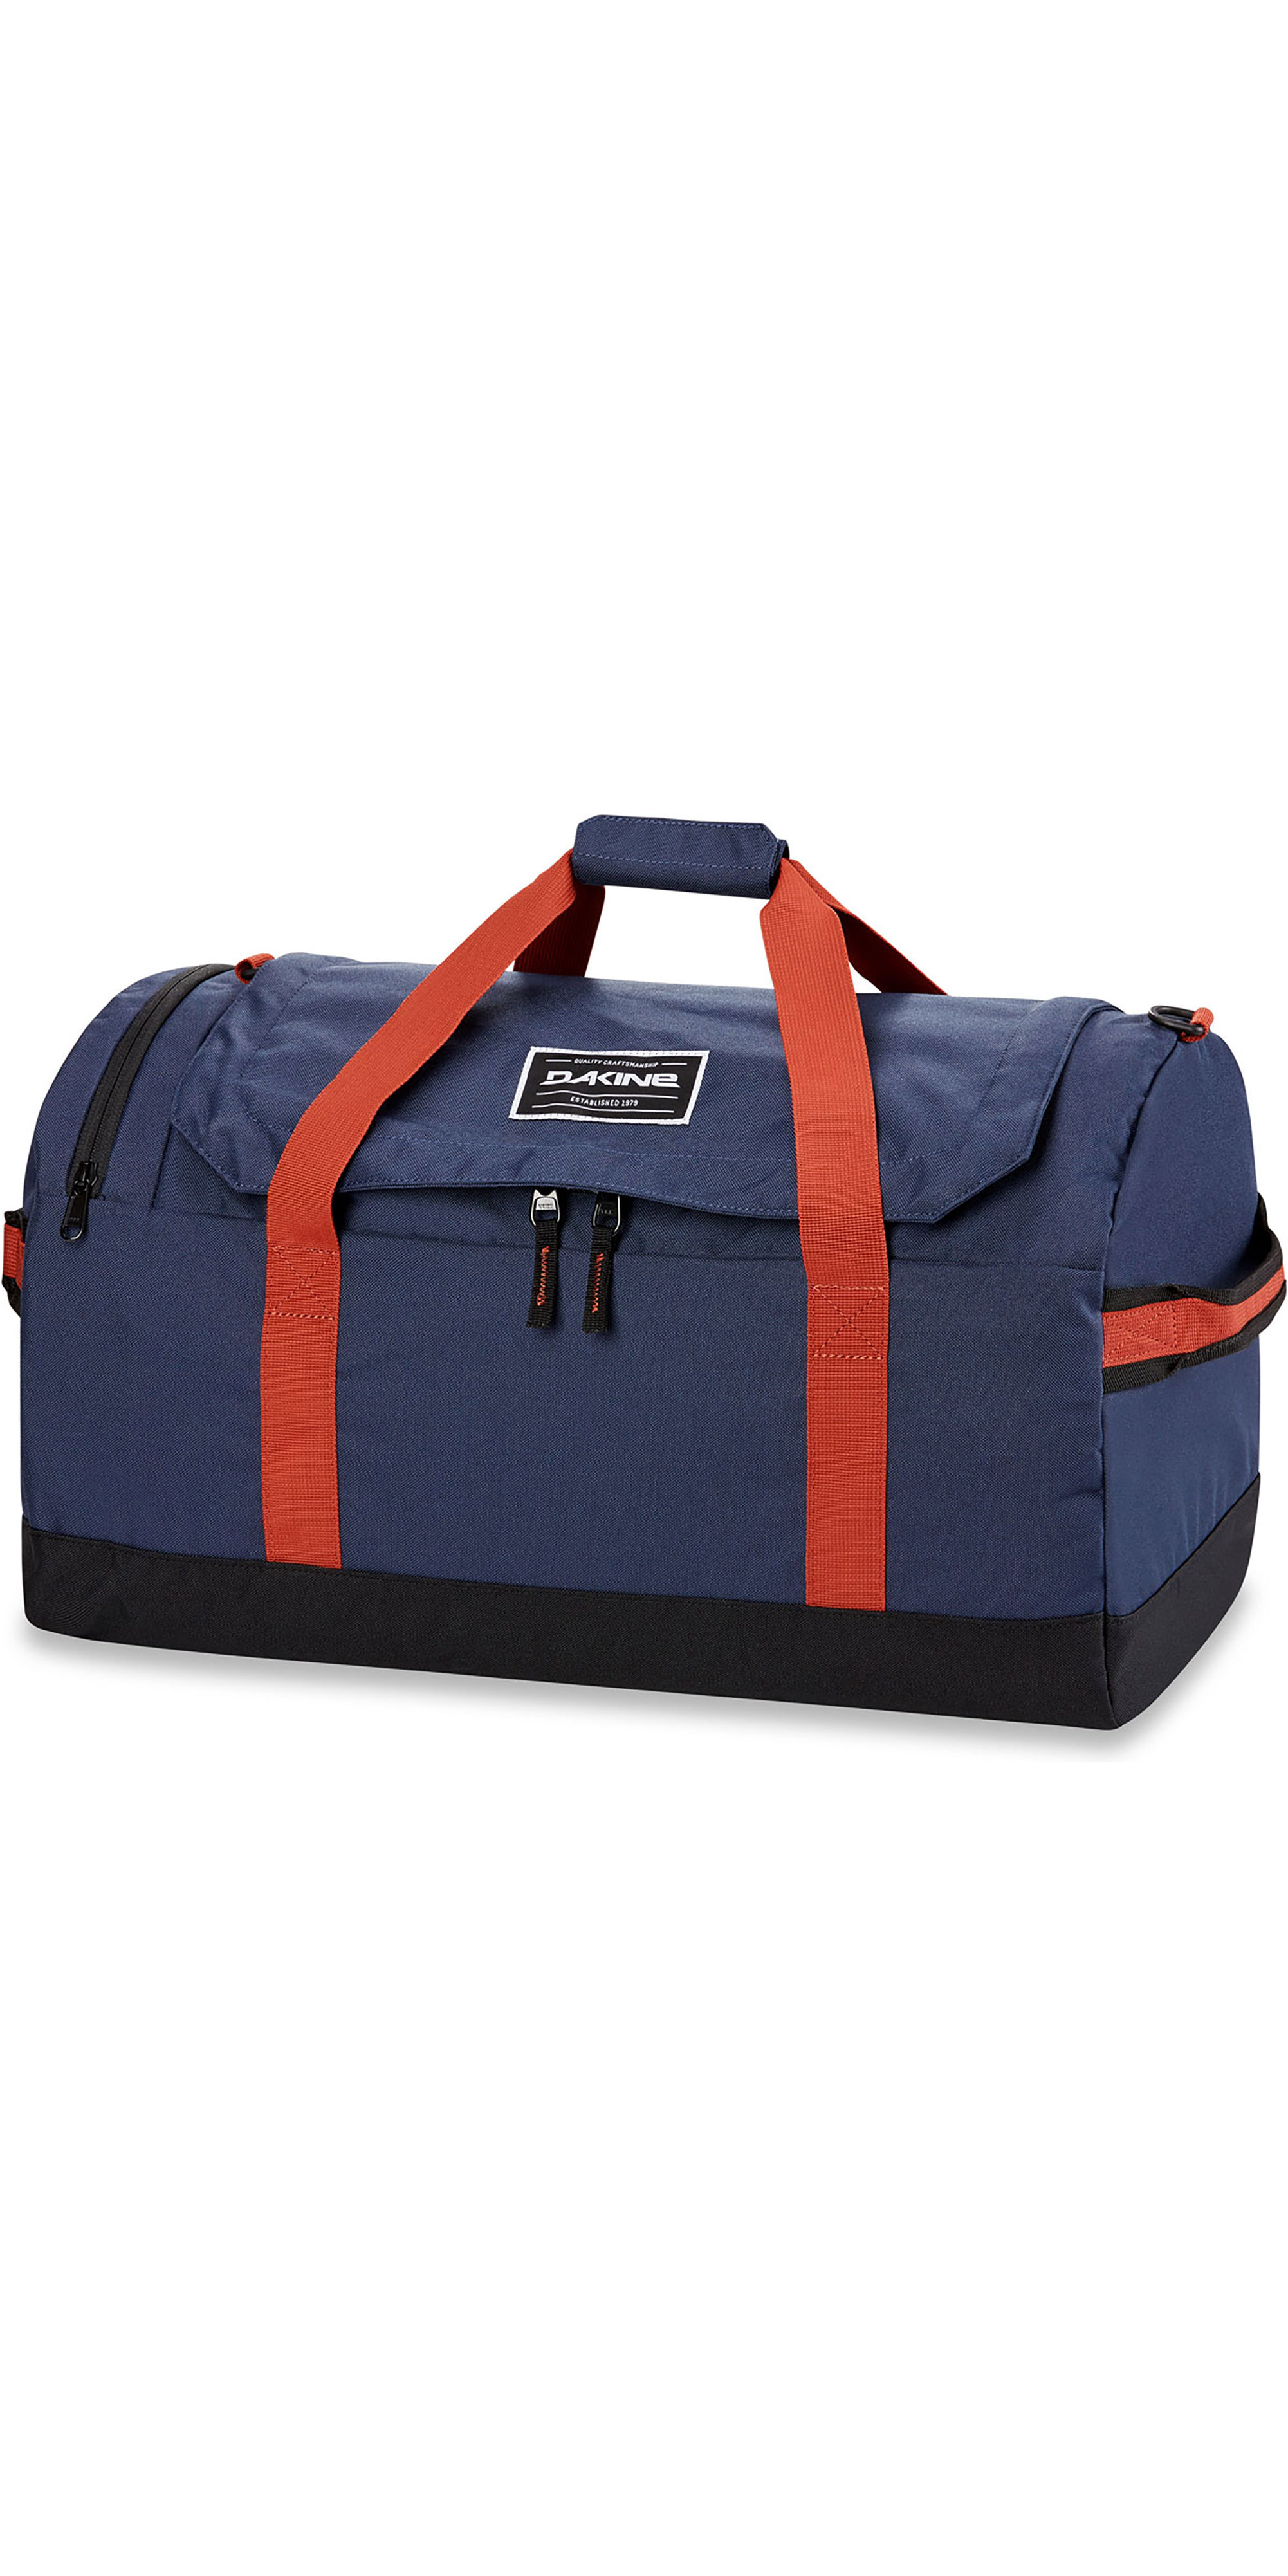 1ea1739c775 2019 Dakine Eq Duffle Bag 50L Dark Navy 10002061 - Holdall - Luggage ...